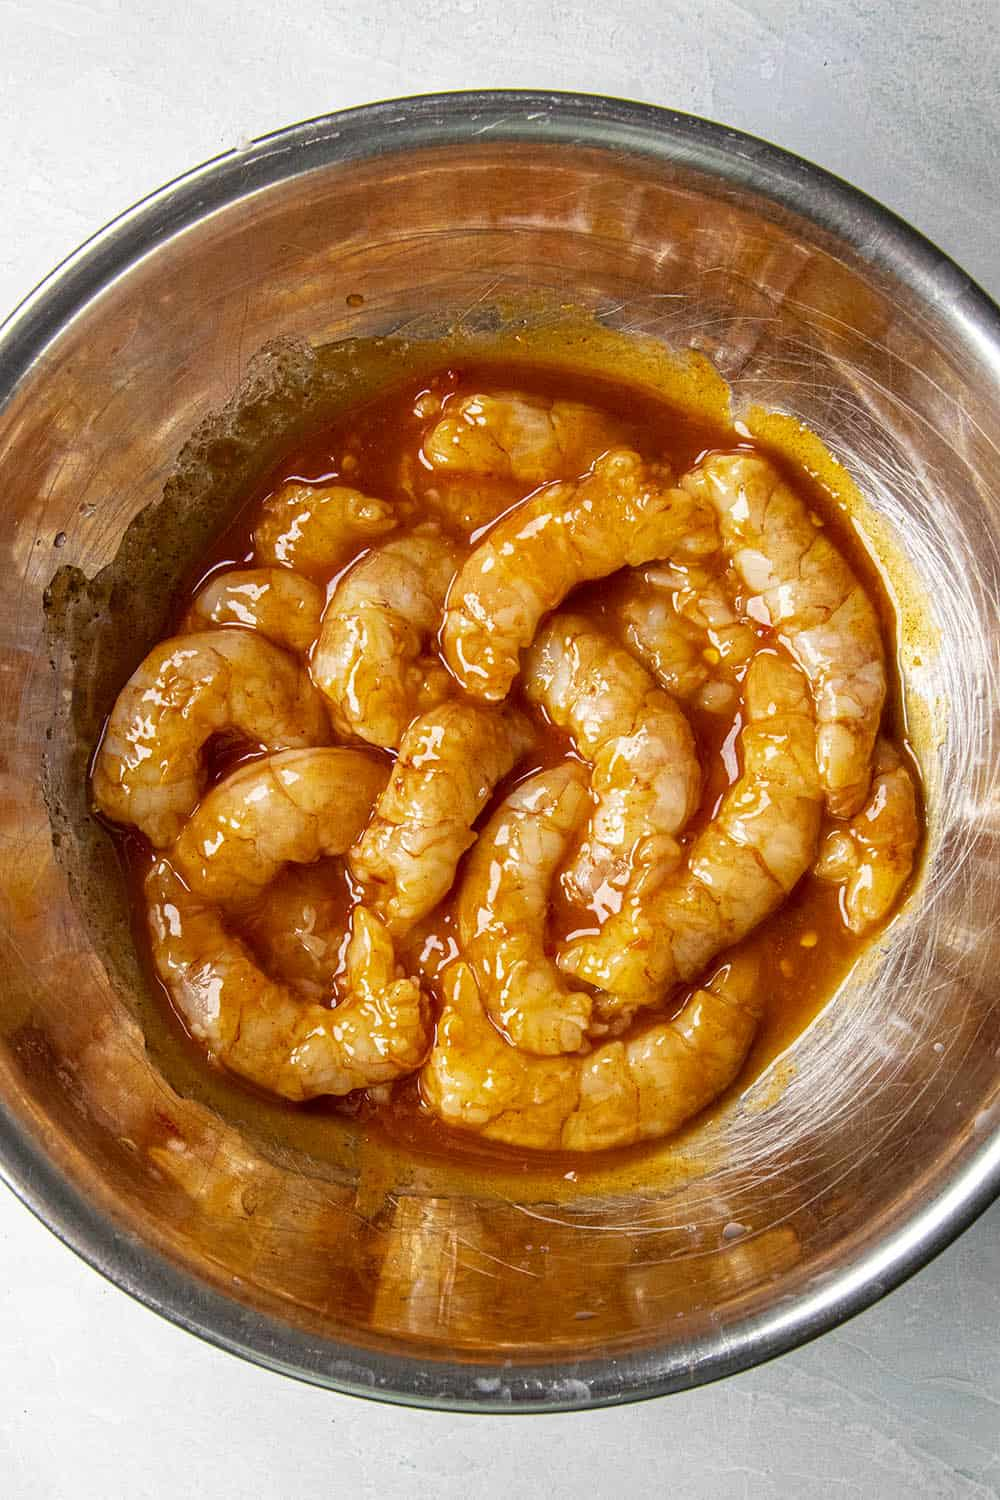 Marinating the shrimp in a bowl